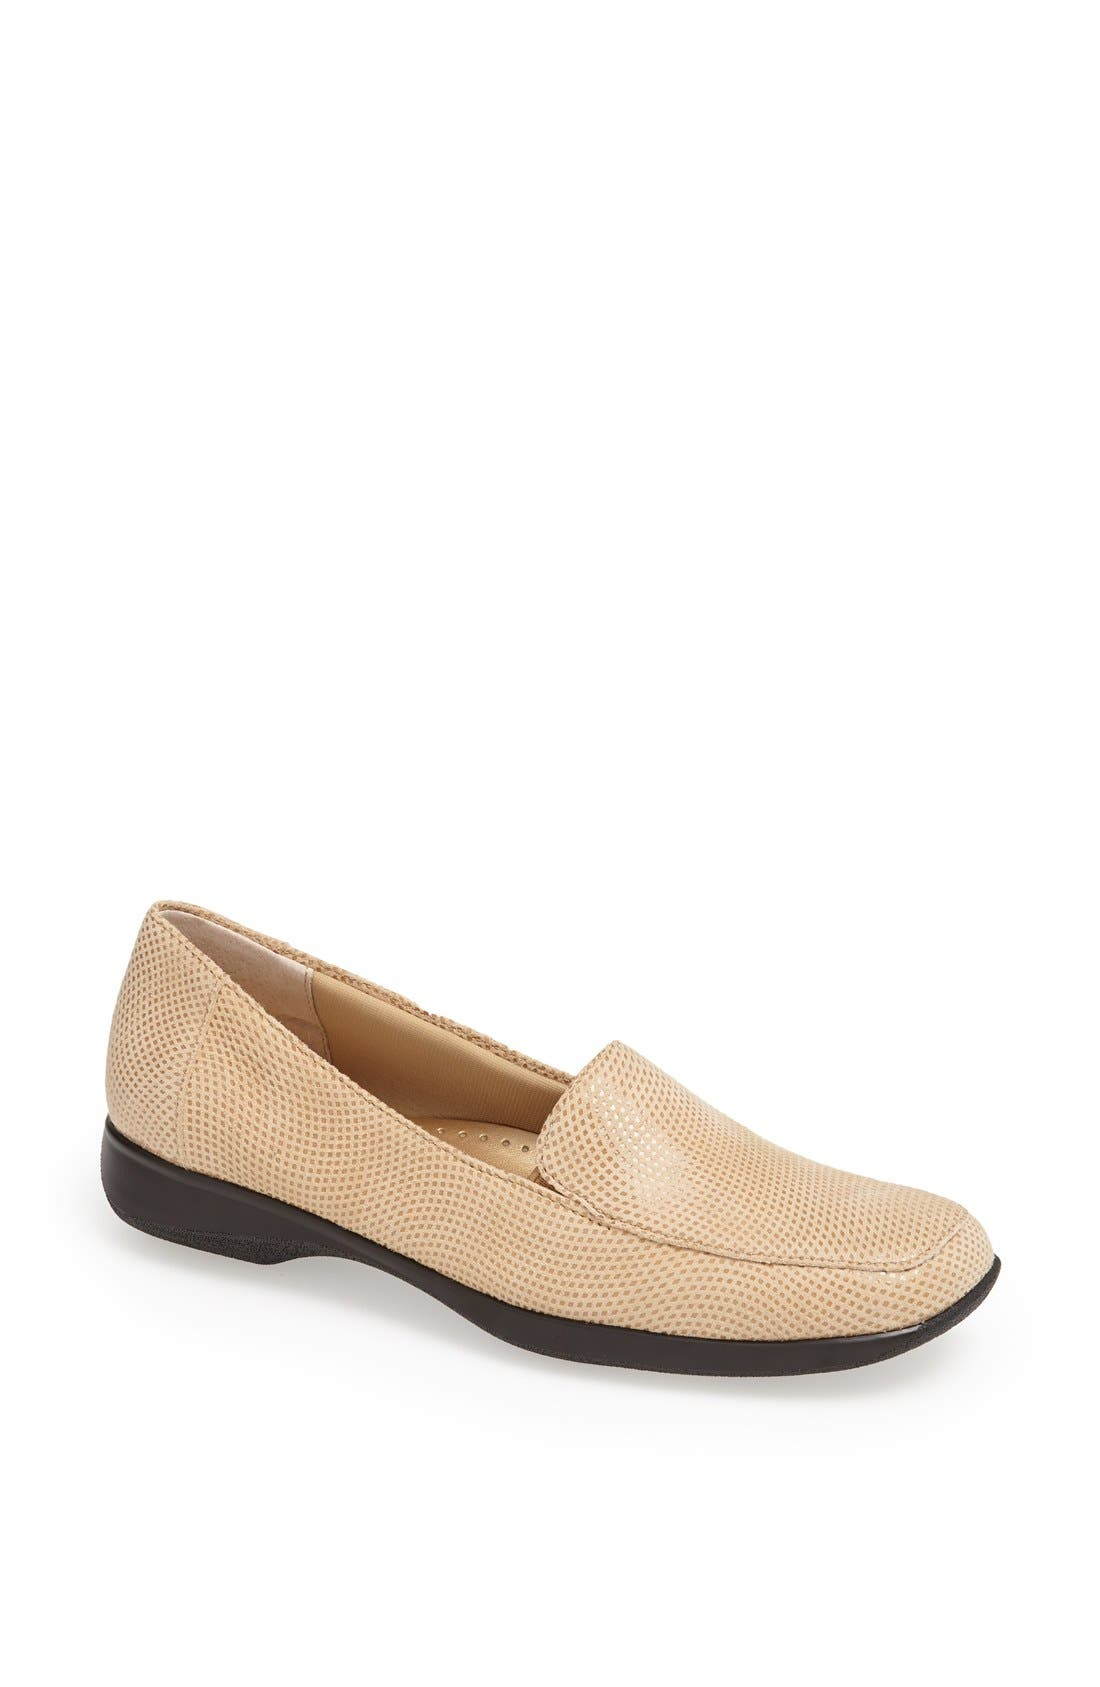 'Jenn' Loafer,                             Main thumbnail 1, color,                             Nude Mini Dot